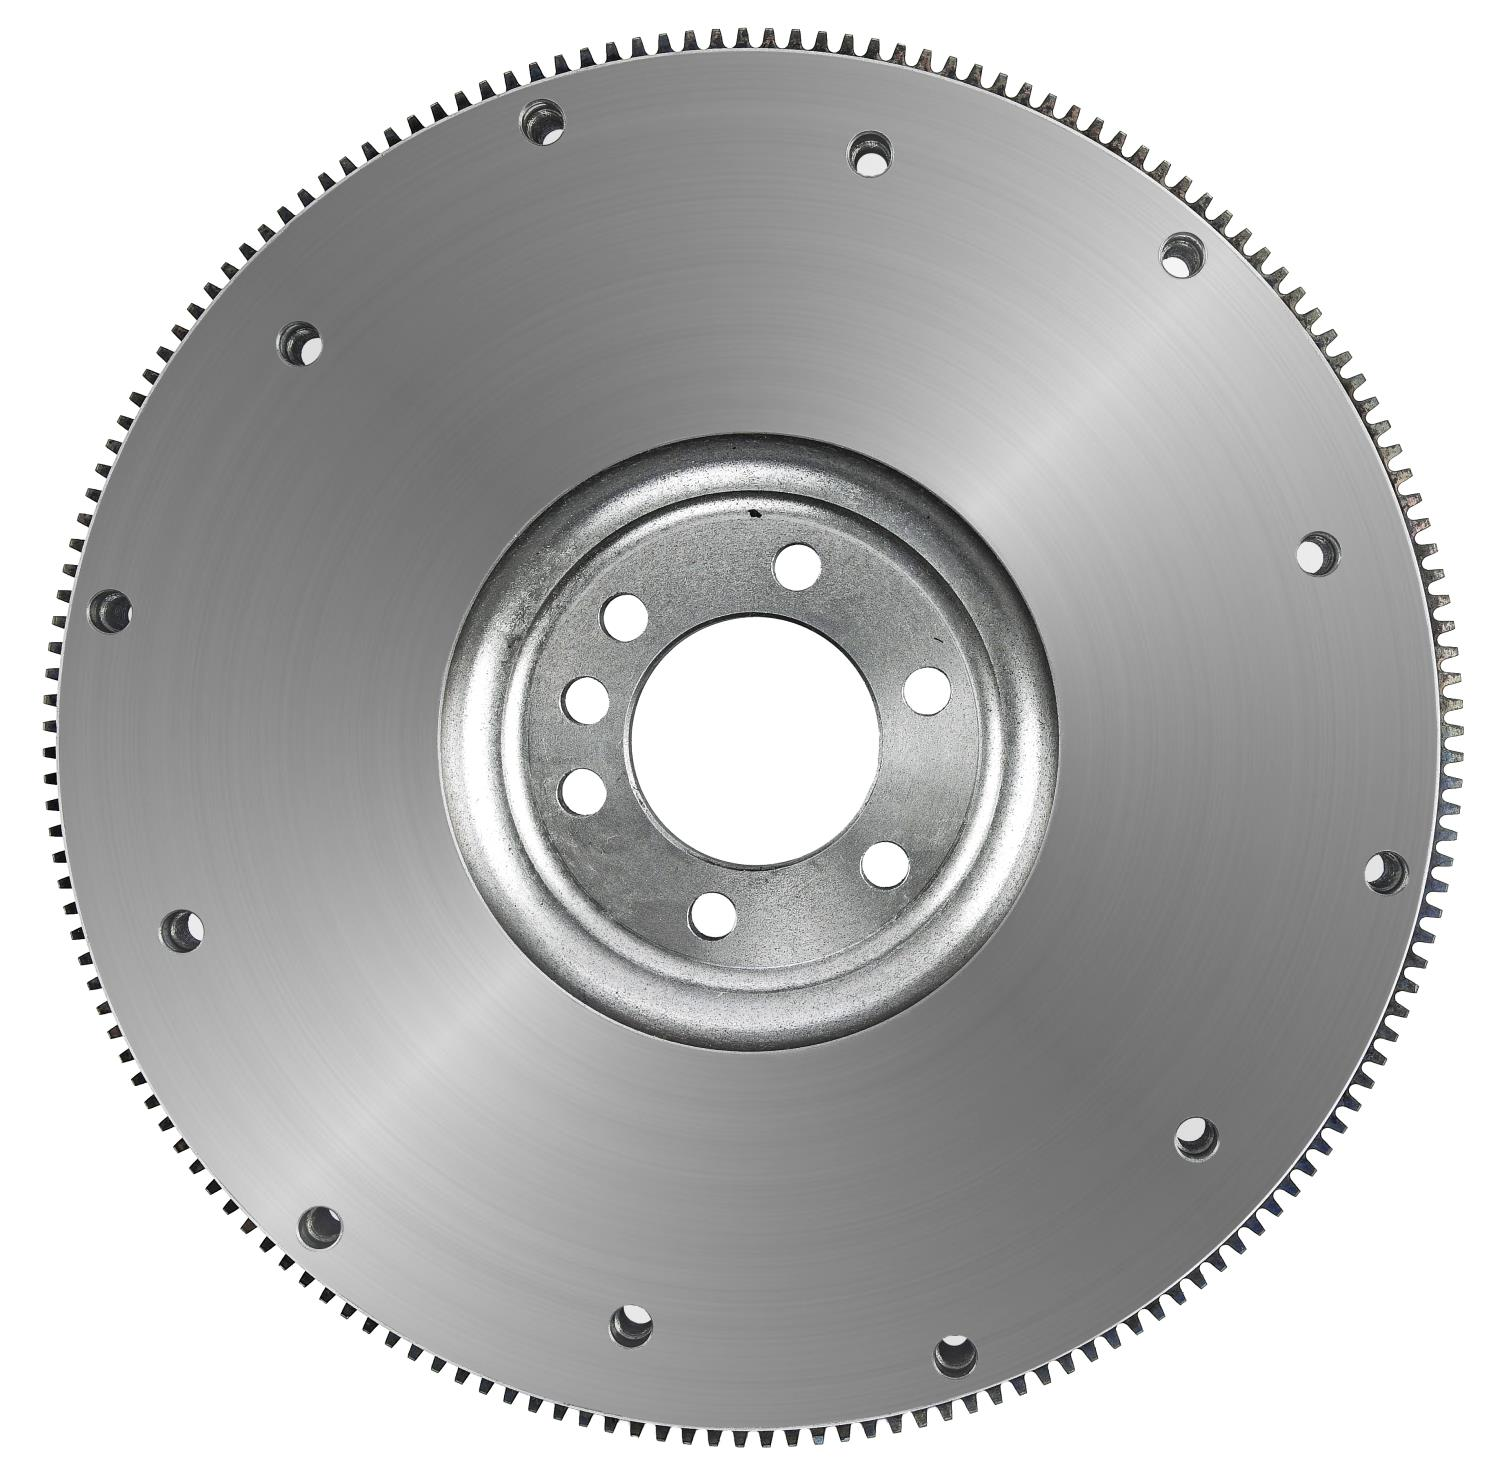 JEGS Flywheel 1967-1985 Small Block Chevy 305, 307, 327, 350, 402, 427